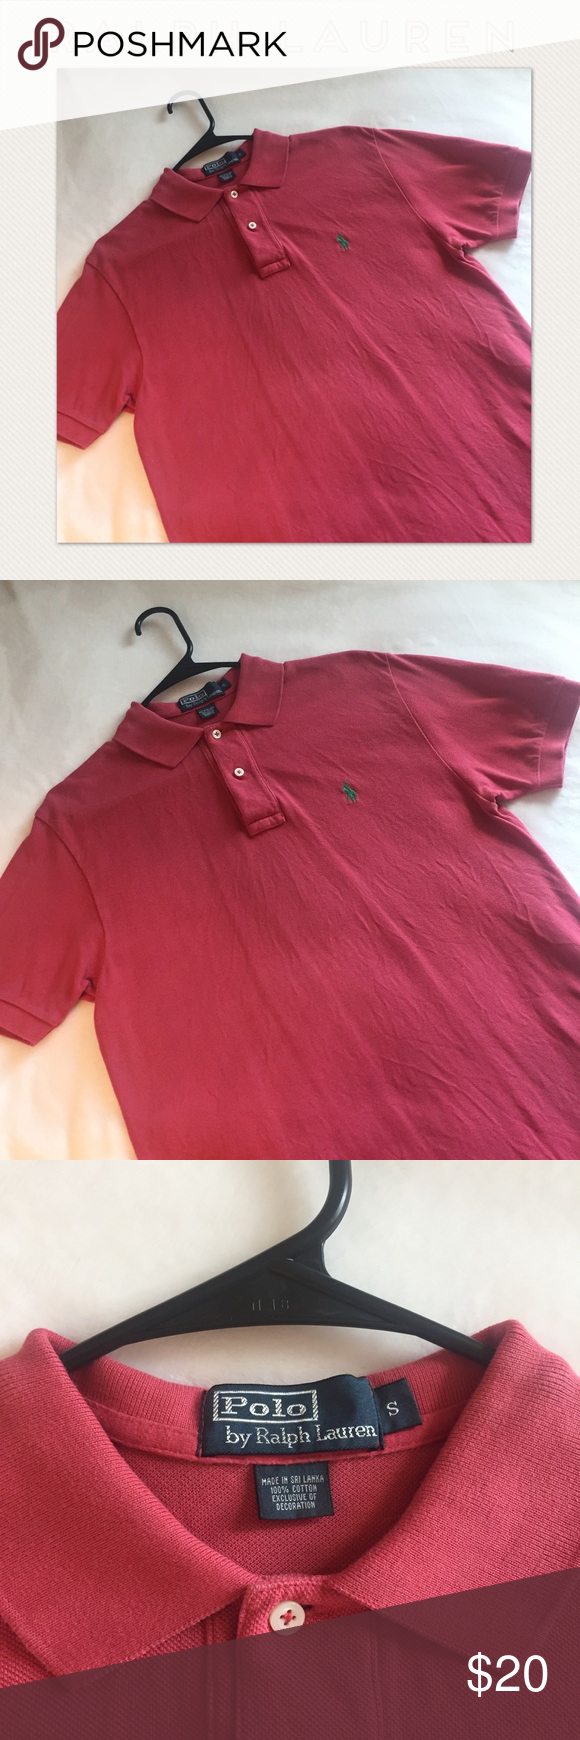 6b8fdf0f8 Ralph Lauren Men's Polo Shirt In great used condition! Size Small. Color  carnation pink. 2 items - add to bundle for a special discount.